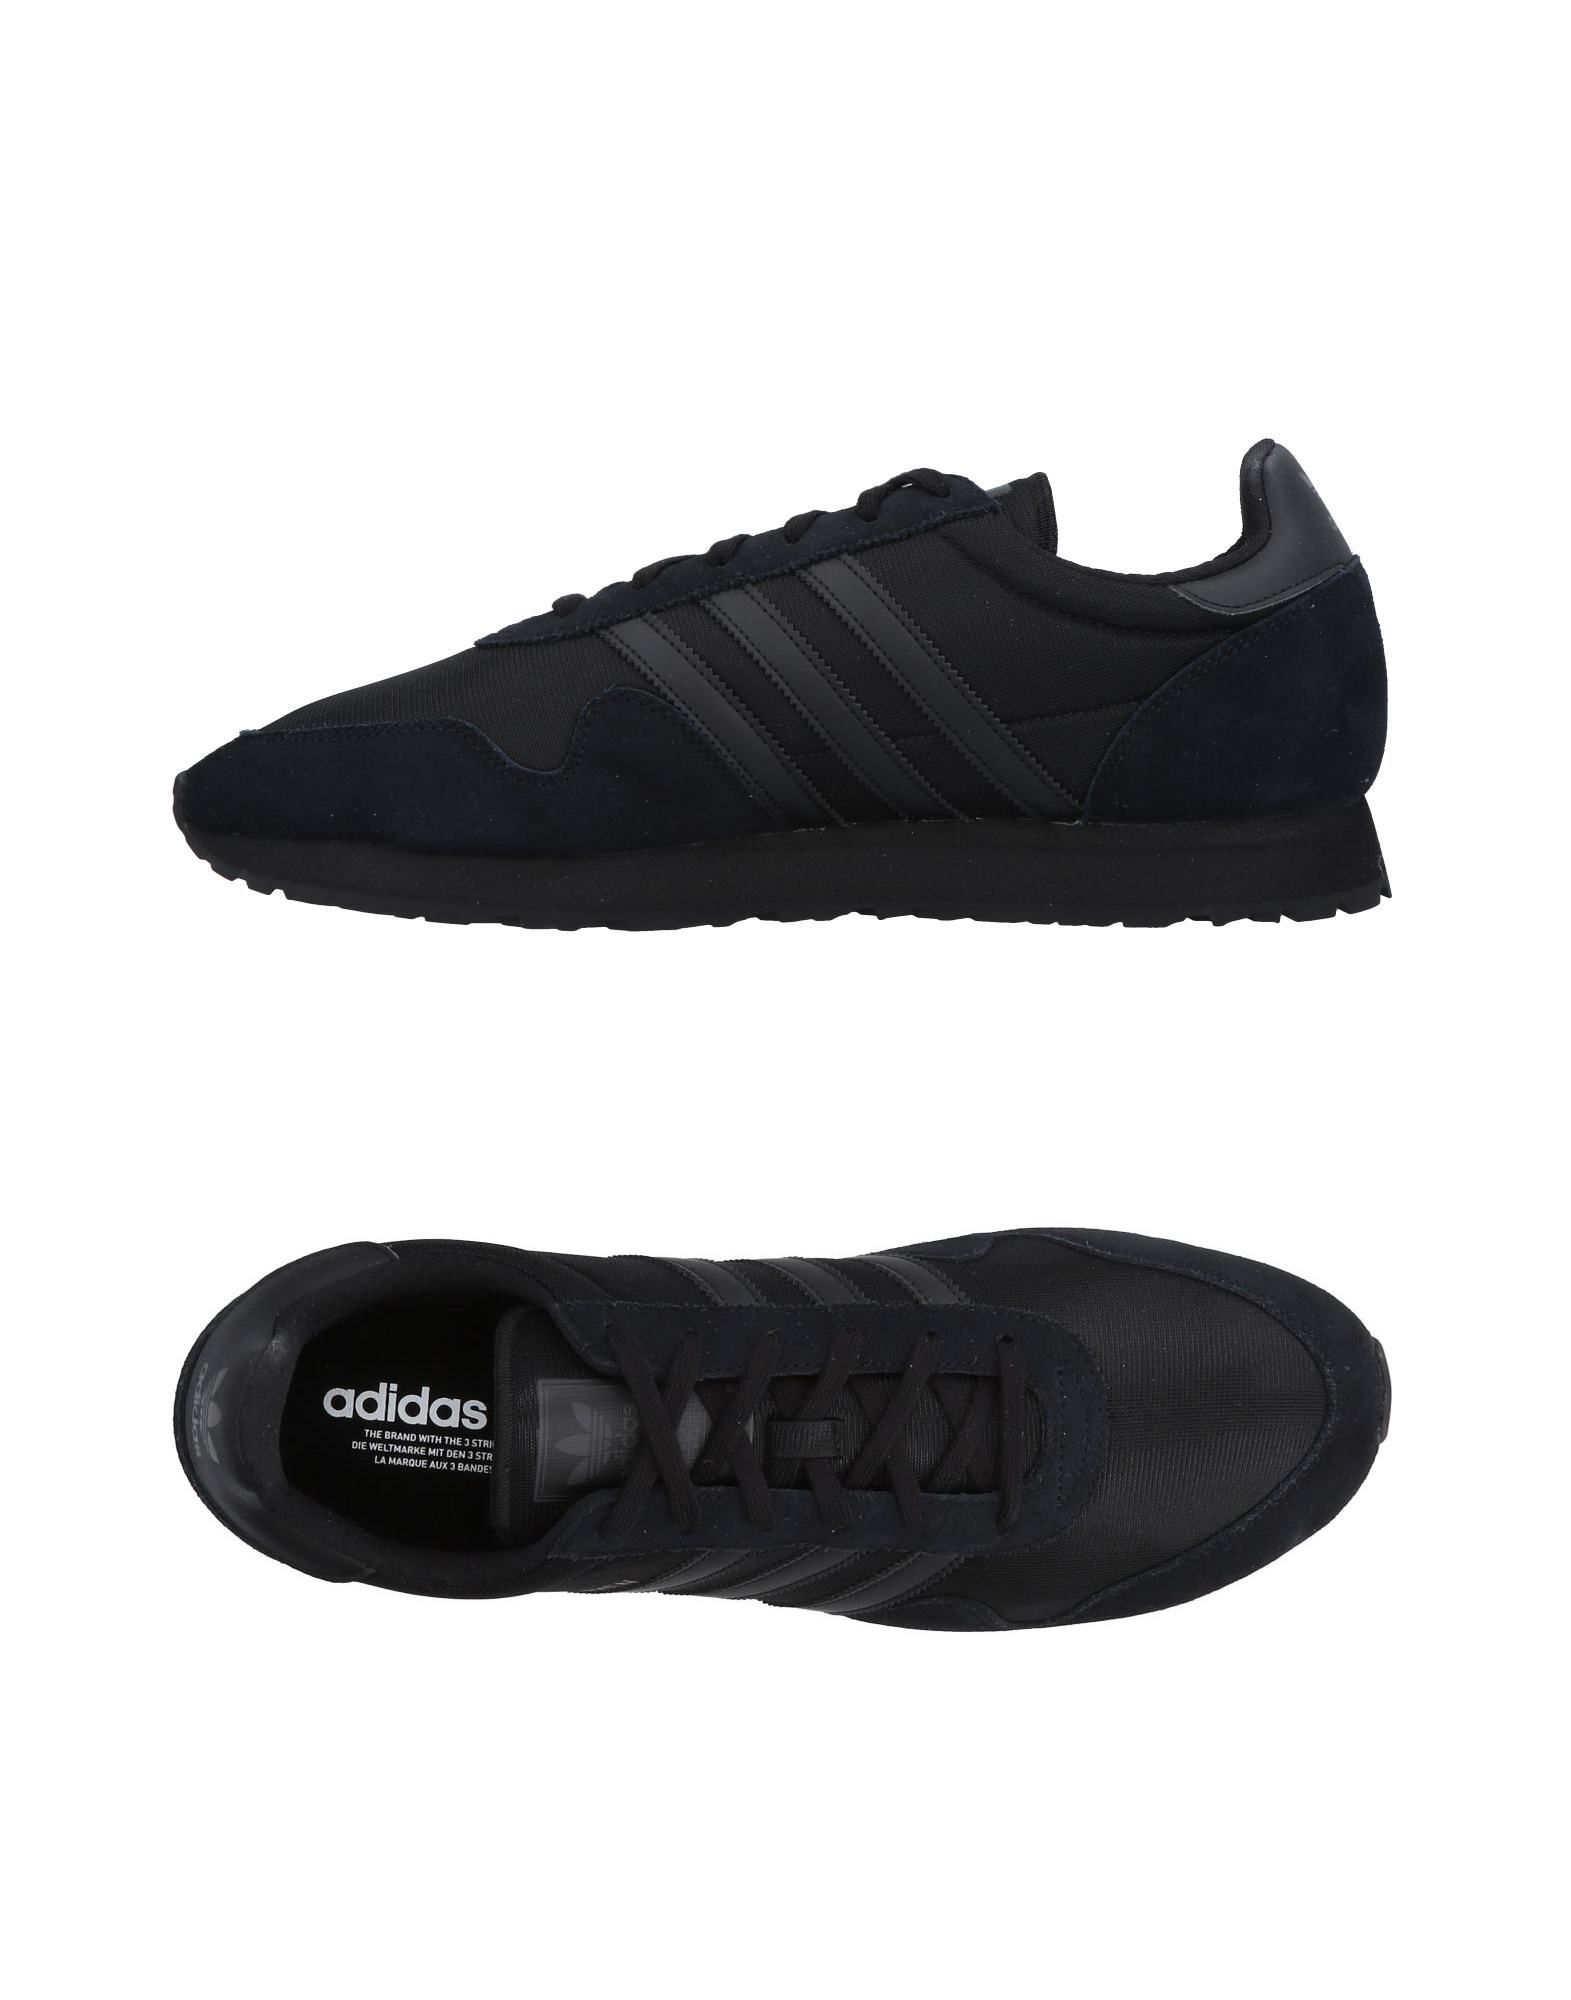 Rabatt echte Schuhe Adidas Originals Sneakers Herren  11469805UP